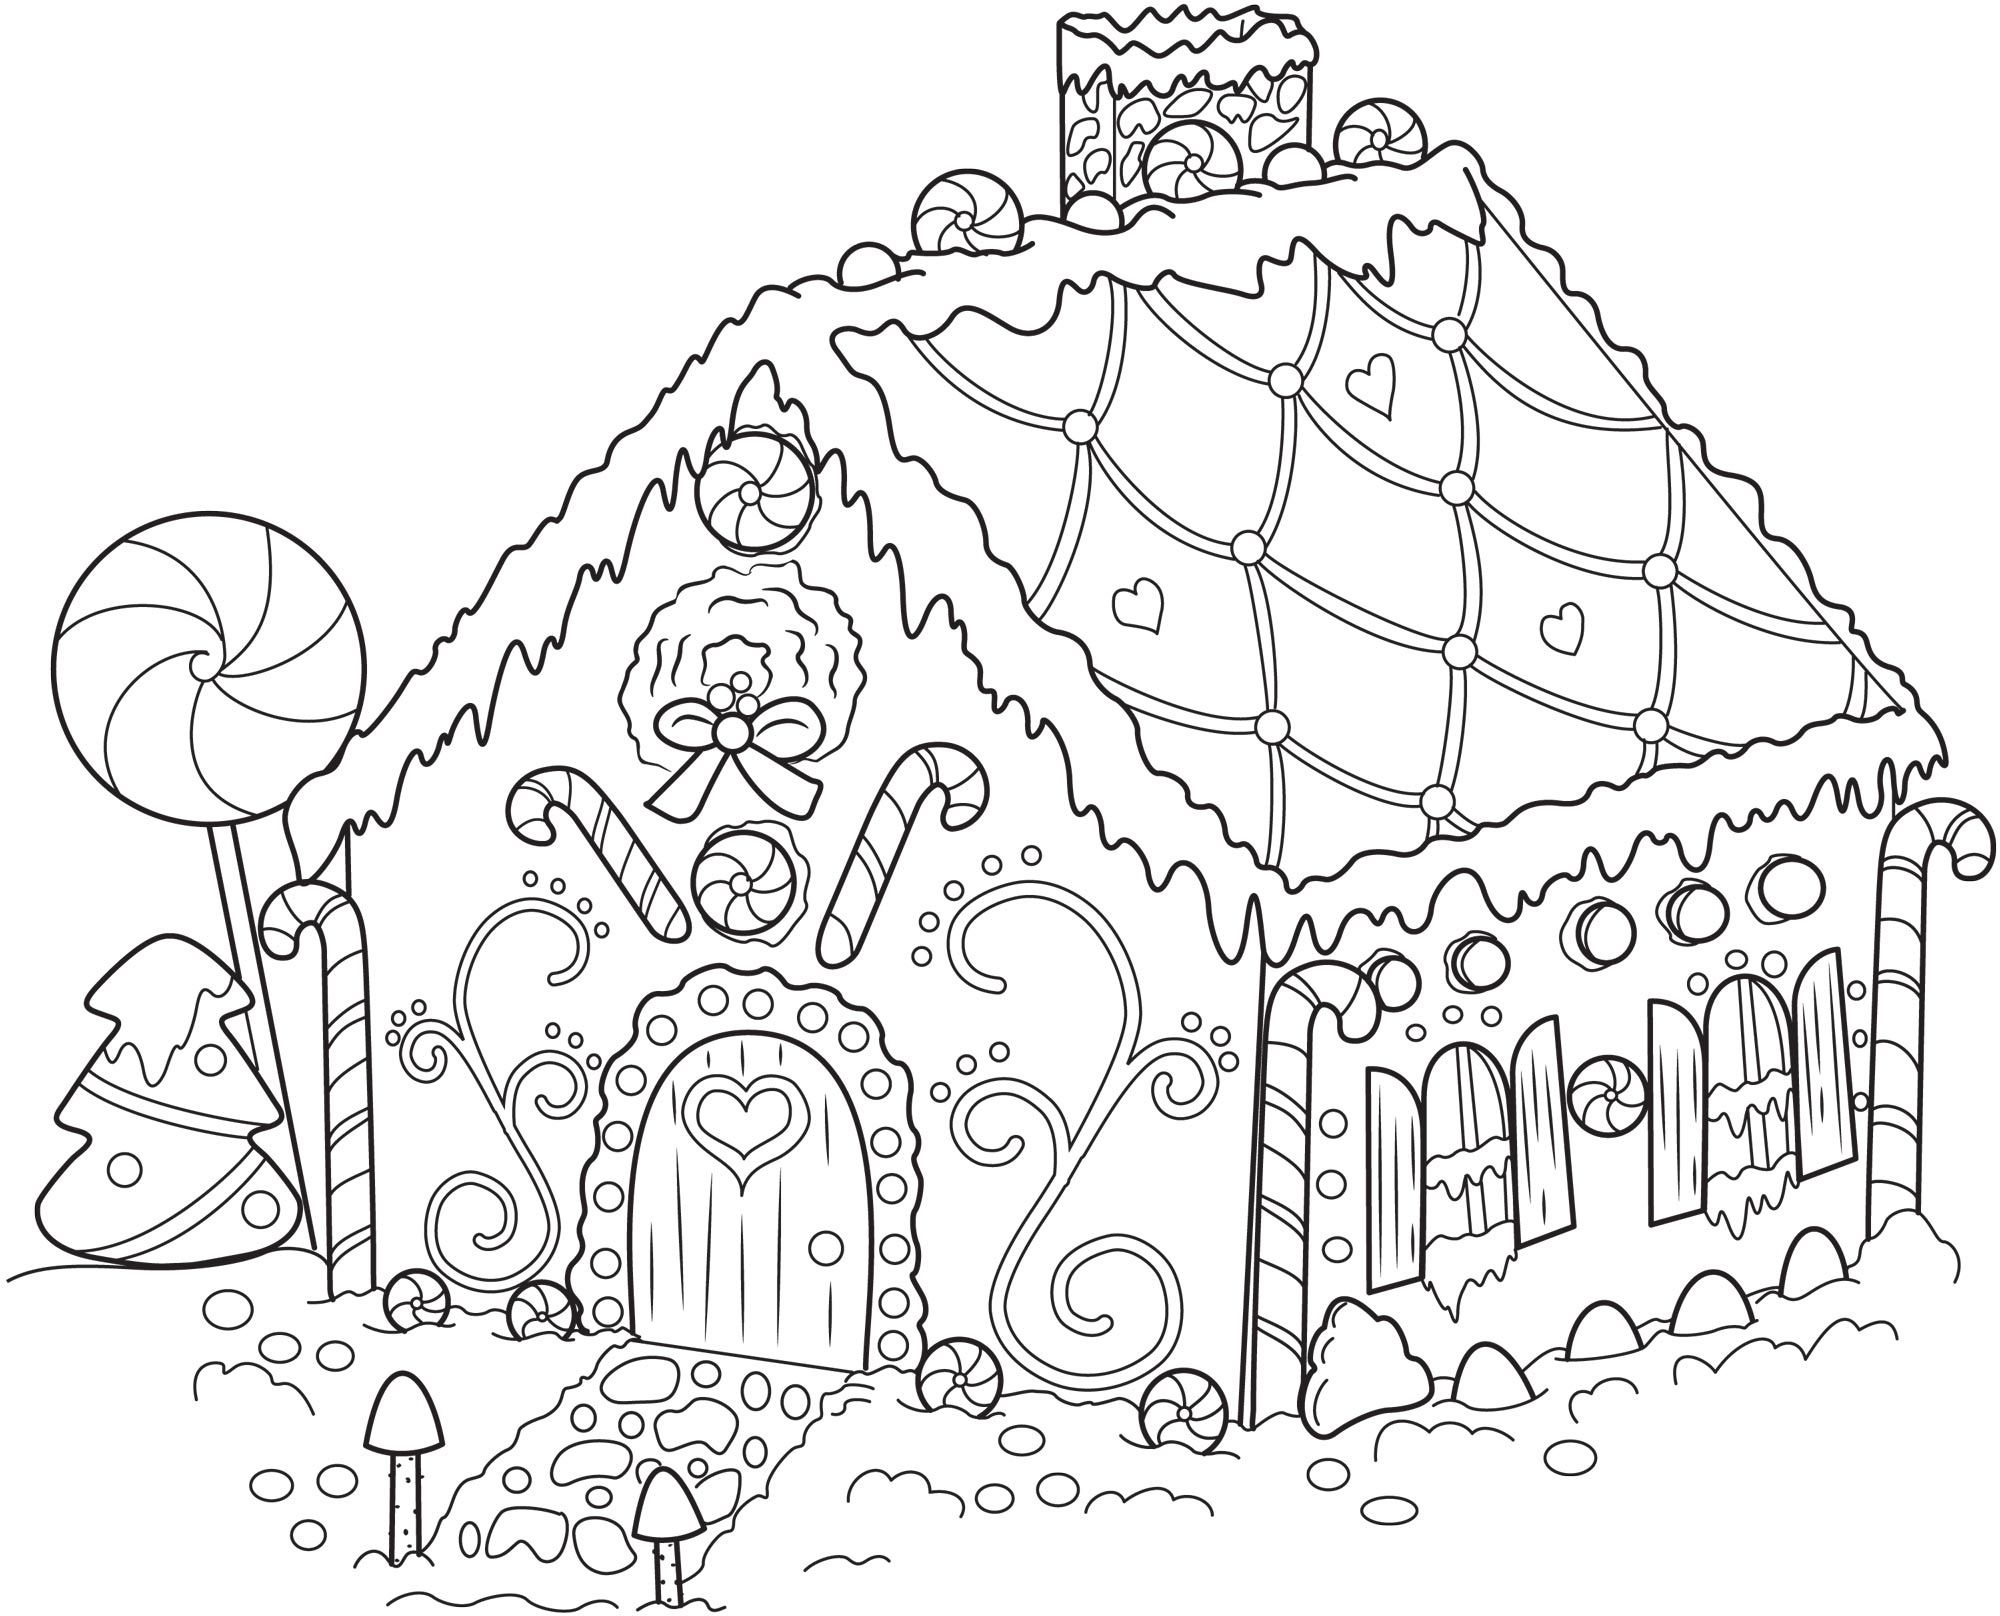 2000x1616 Gingerbread Coloring Pages Image Highest Quality Home Unique Man